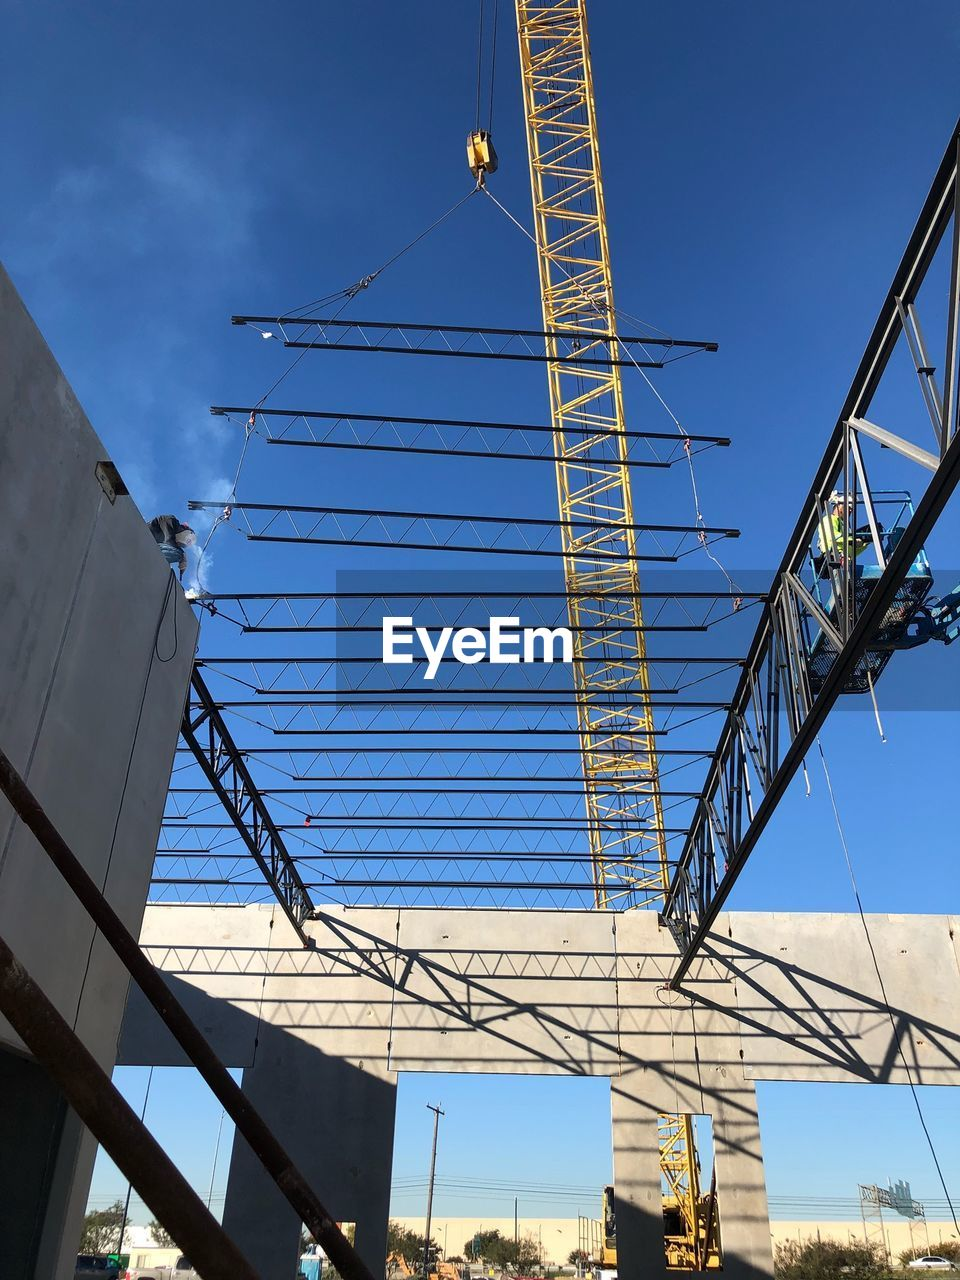 architecture, low angle view, sky, built structure, no people, nature, connection, day, construction industry, building exterior, blue, machinery, cable, development, construction site, crane - construction machinery, bridge, outdoors, bridge - man made structure, industry, skyscraper, power supply